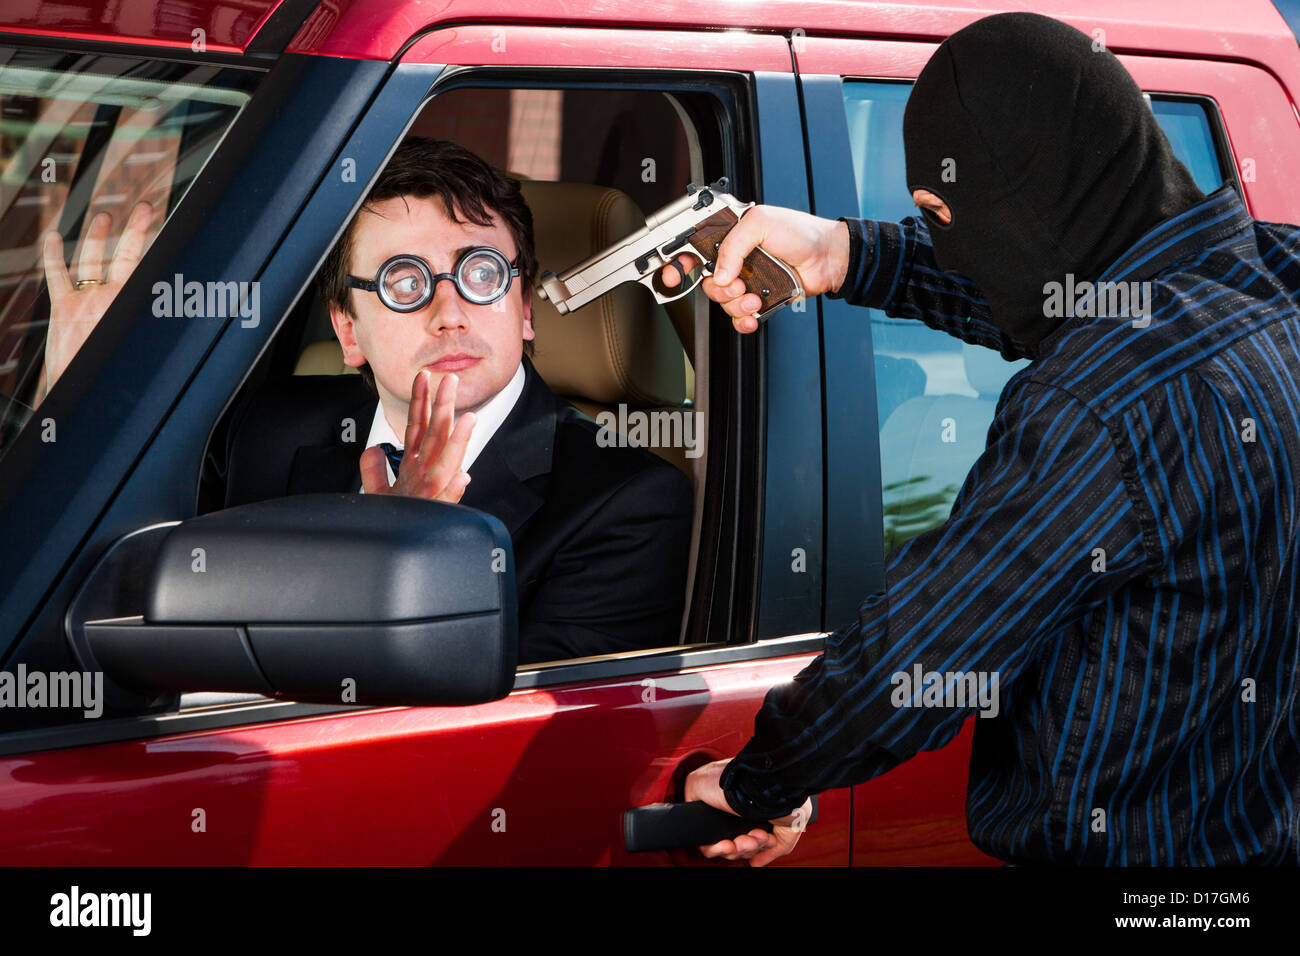 Robbery of the businessman in its car - Stock Image